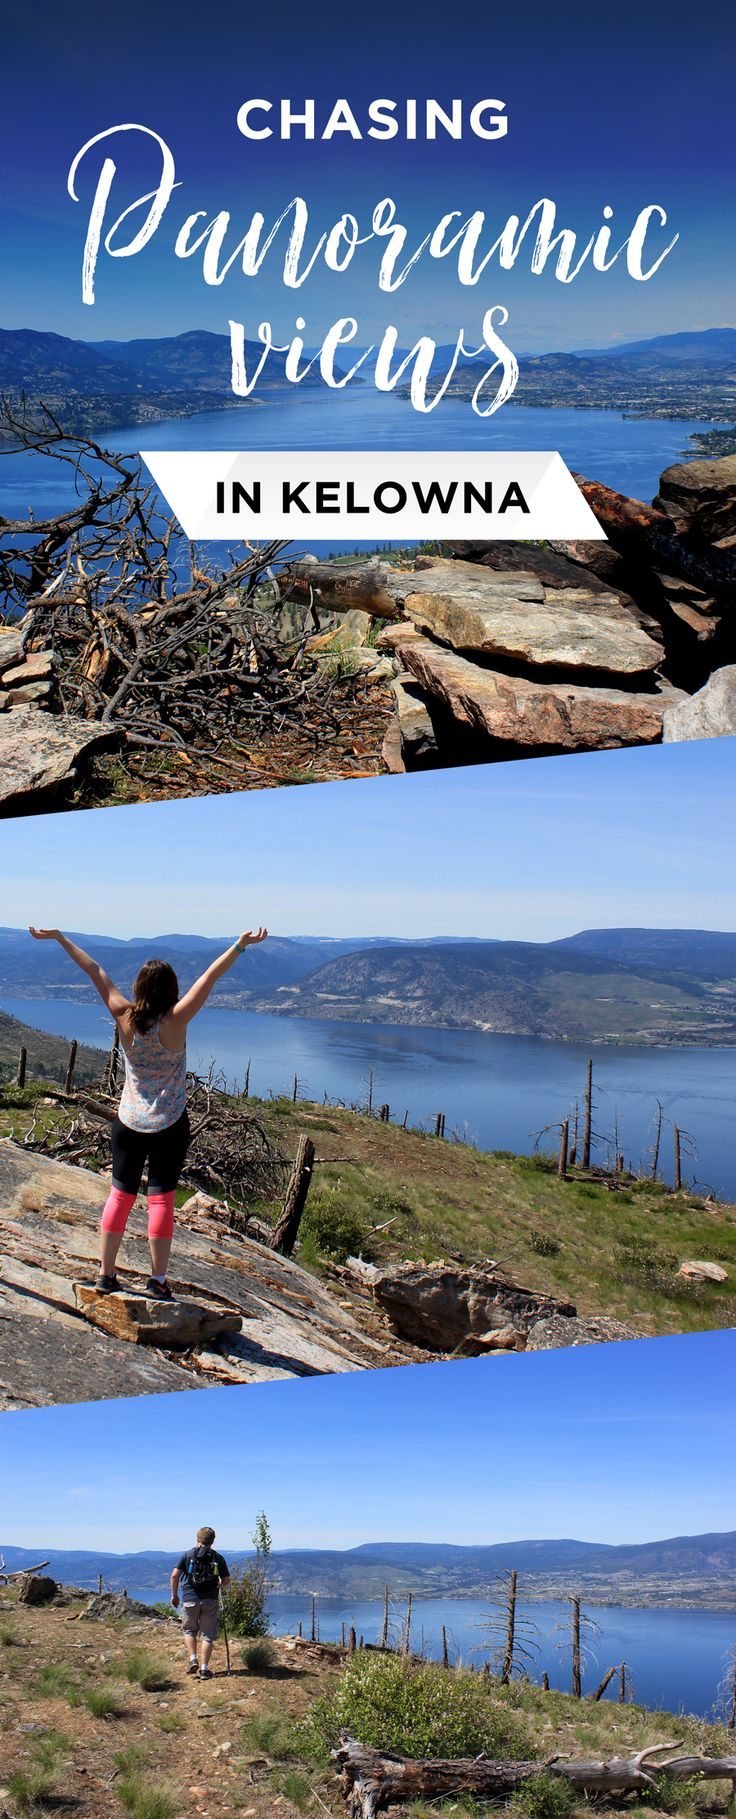 Unparalleled views of the Okanagan Valley will greet you on this amazing hike. Great for an easy stroll, an intensive hike, and even rock climbers! Check out this amazing park in the Okanagan.